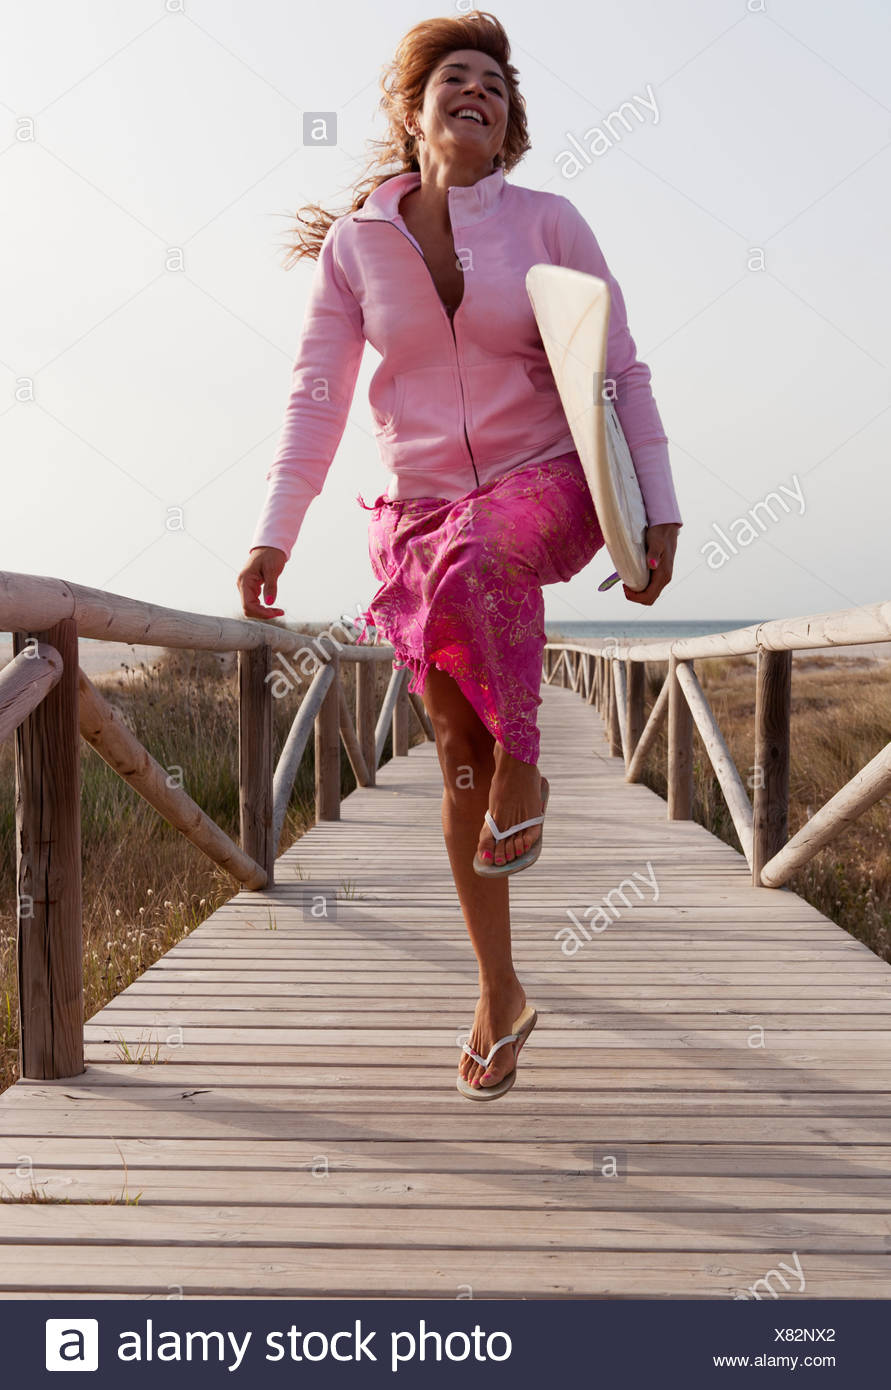 A Young Woman Skipping Down A Wooden Boardwalk With A Surfboard; Tarifa, Cadiz, Andalusia, Spain - Stock Image